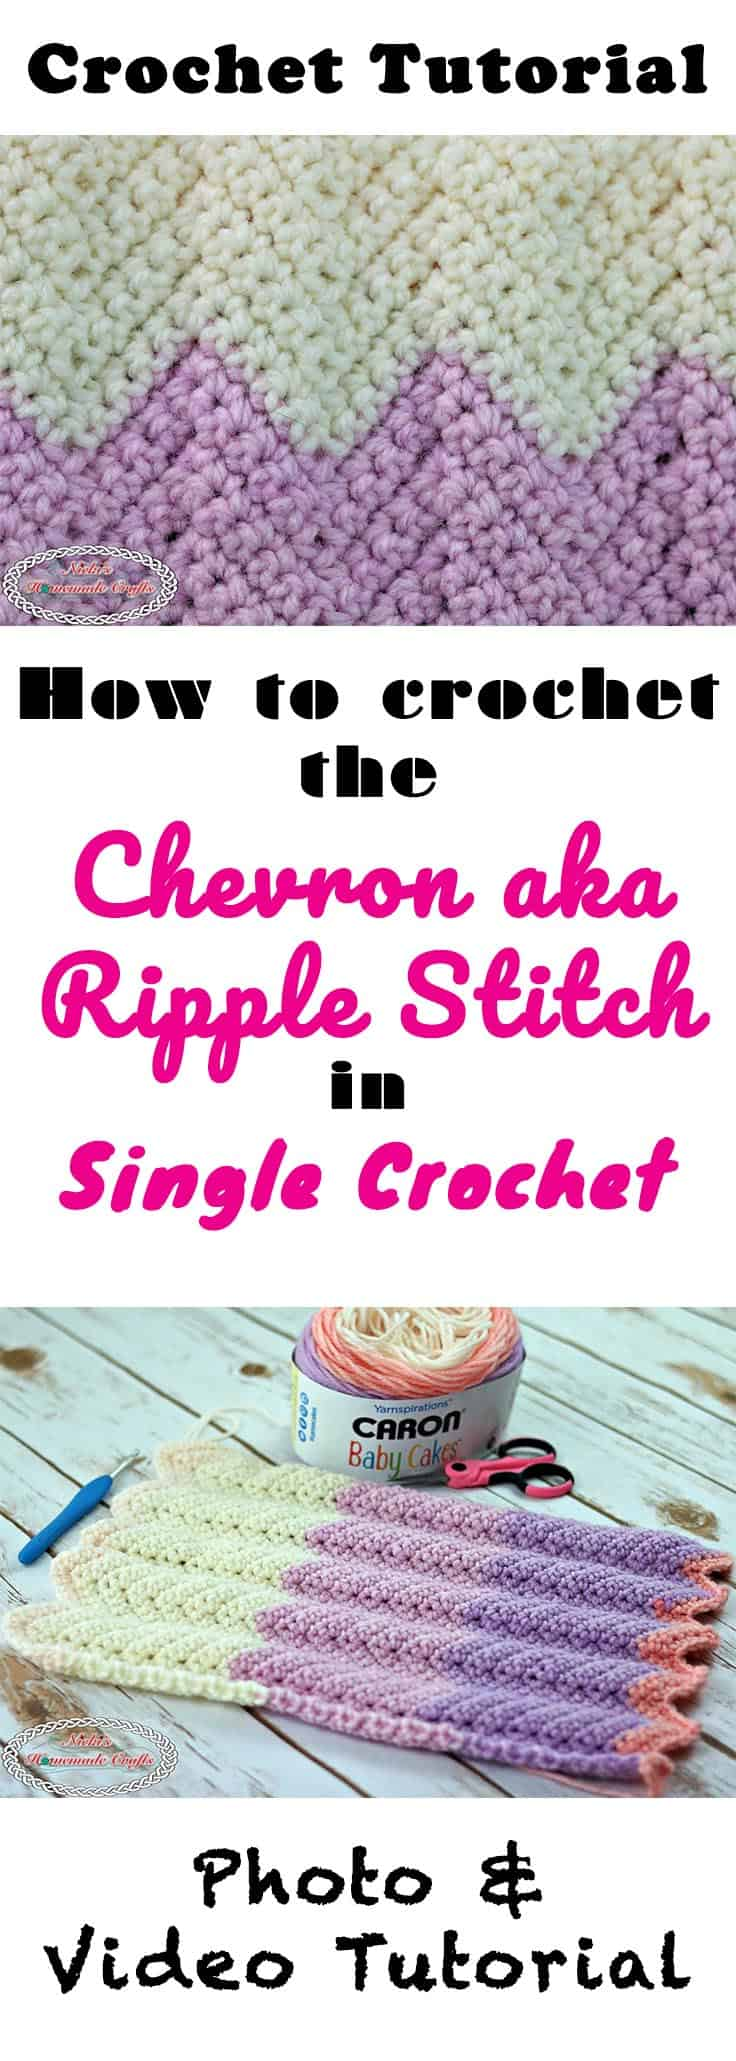 #crochet #chevron #crochetstitch #crochetutorial #ripplestitch #chevronstitch #videotutorial